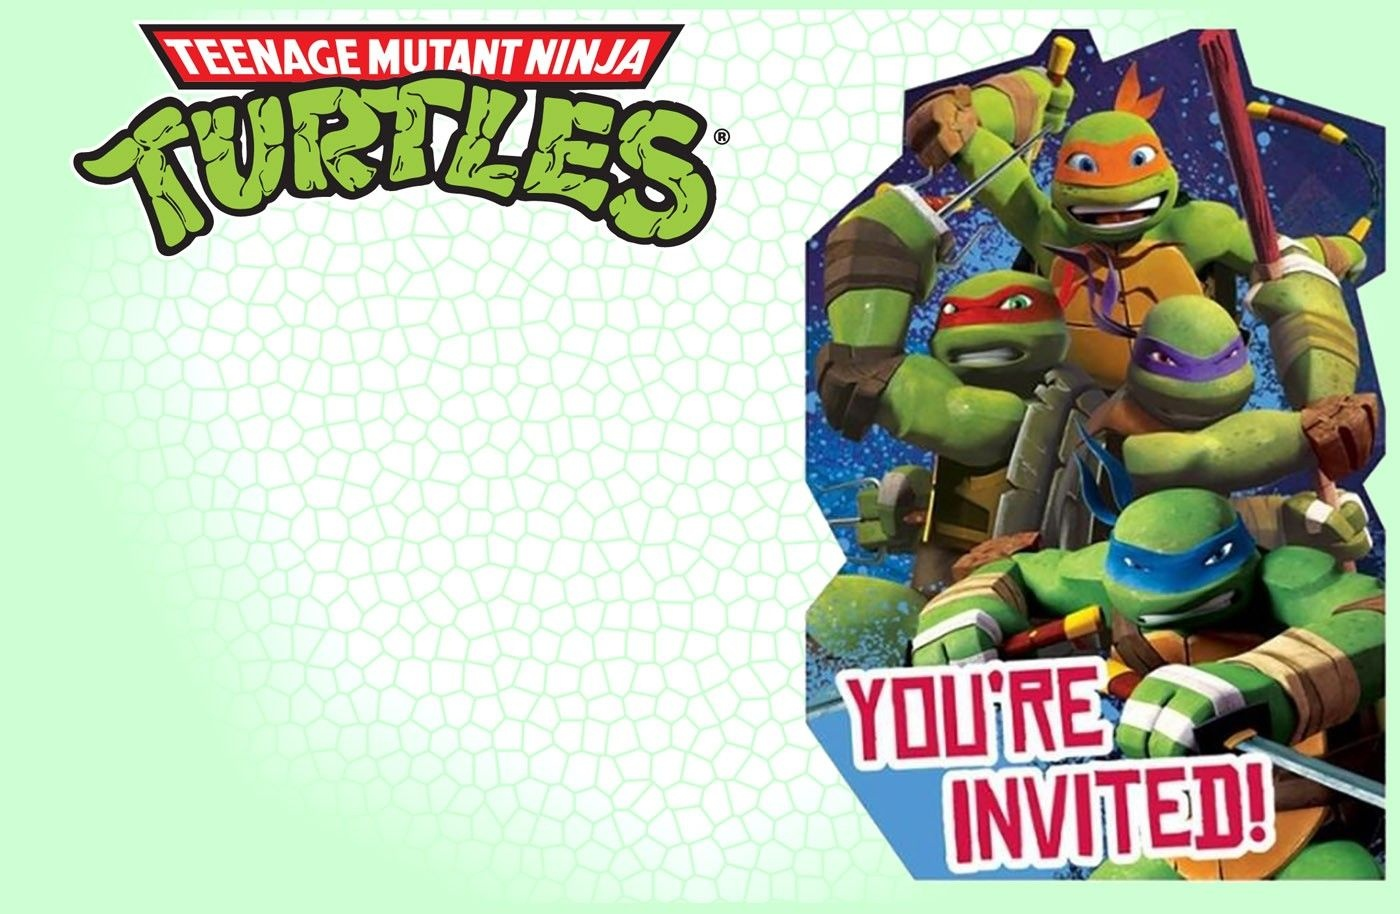 Editable Ninja Turtle Invitation Template | Tkb Printables In 2019 - Free Printable Tmnt Birthday Party Invitations